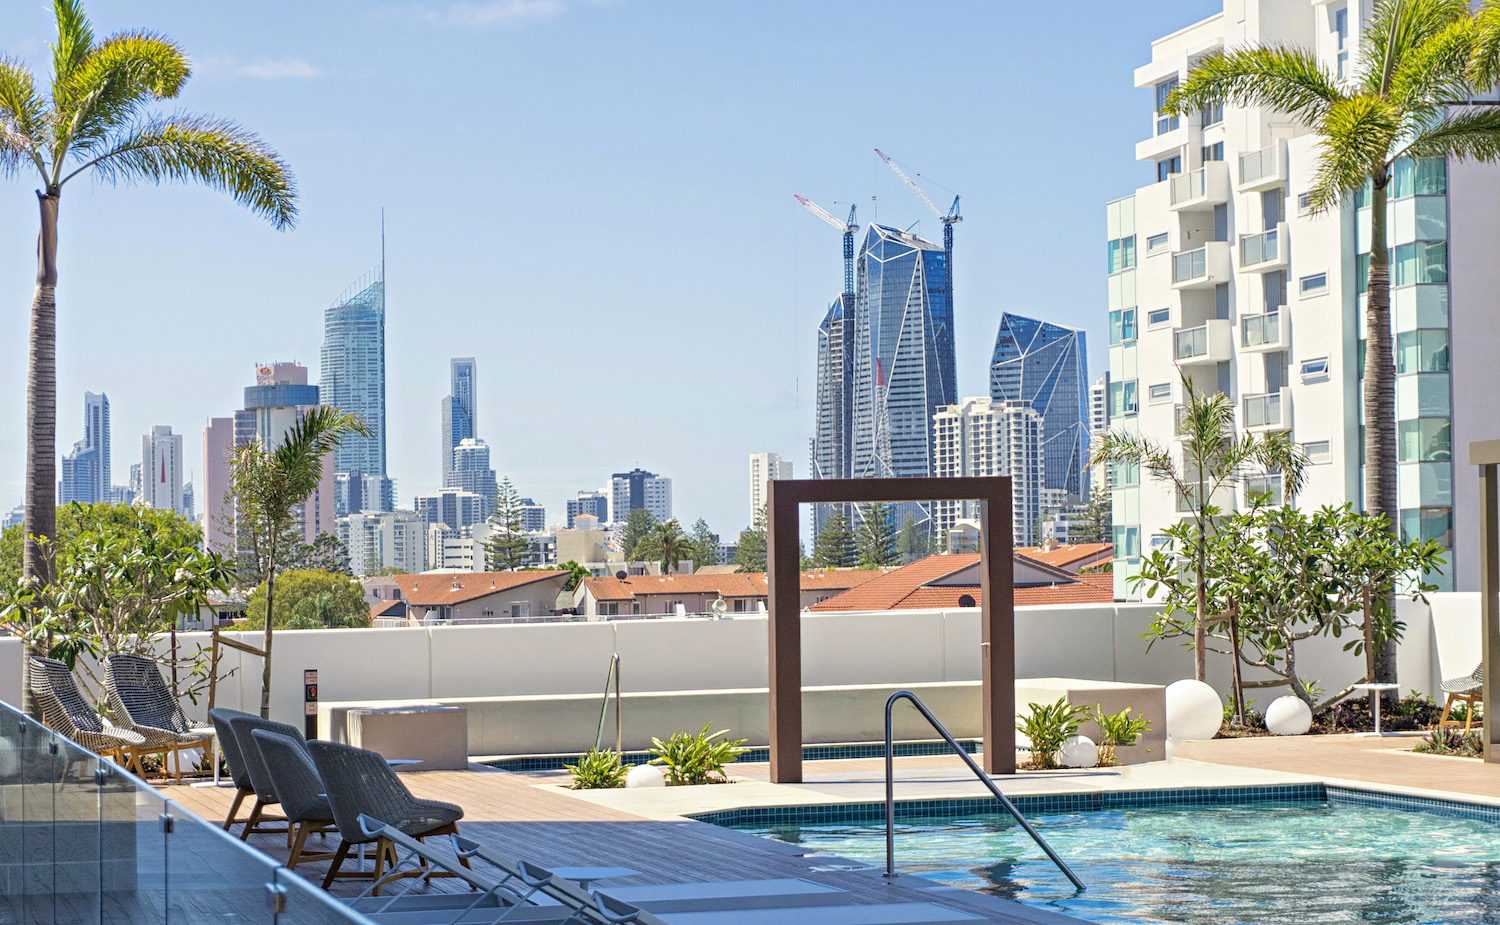 Qube apartments Gold Coast Australia city views from the pool